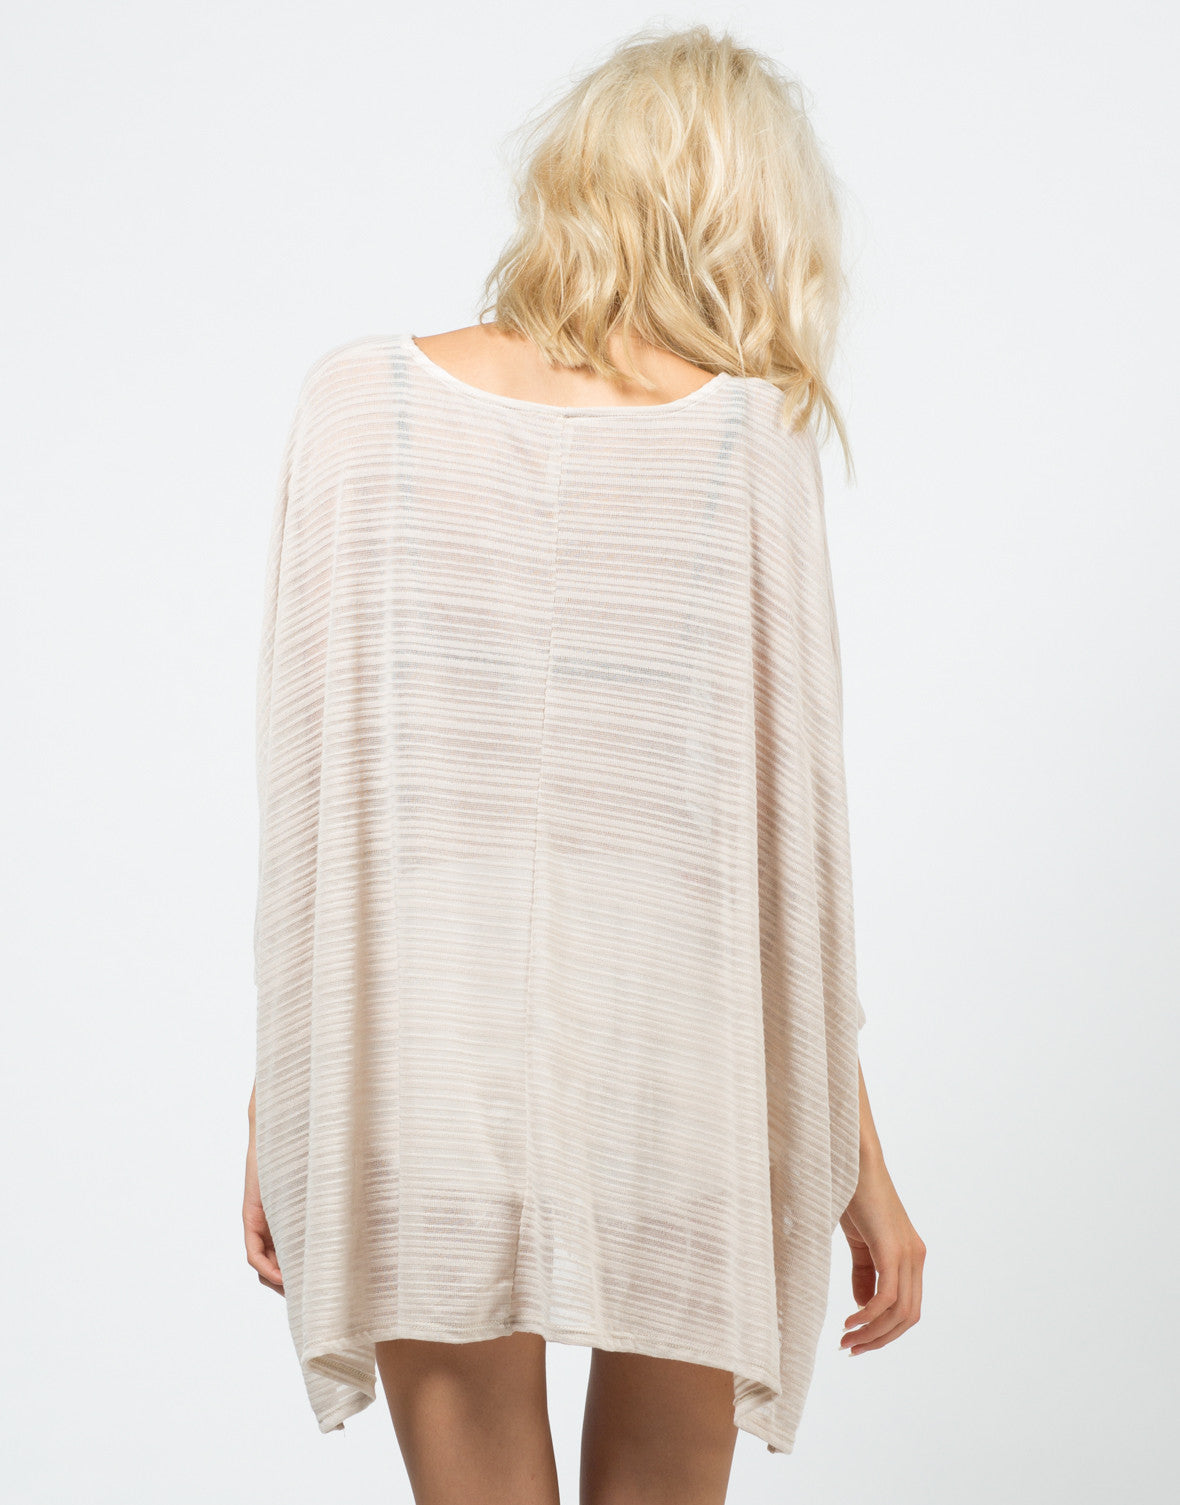 Back View of Inbetween the Lines Top